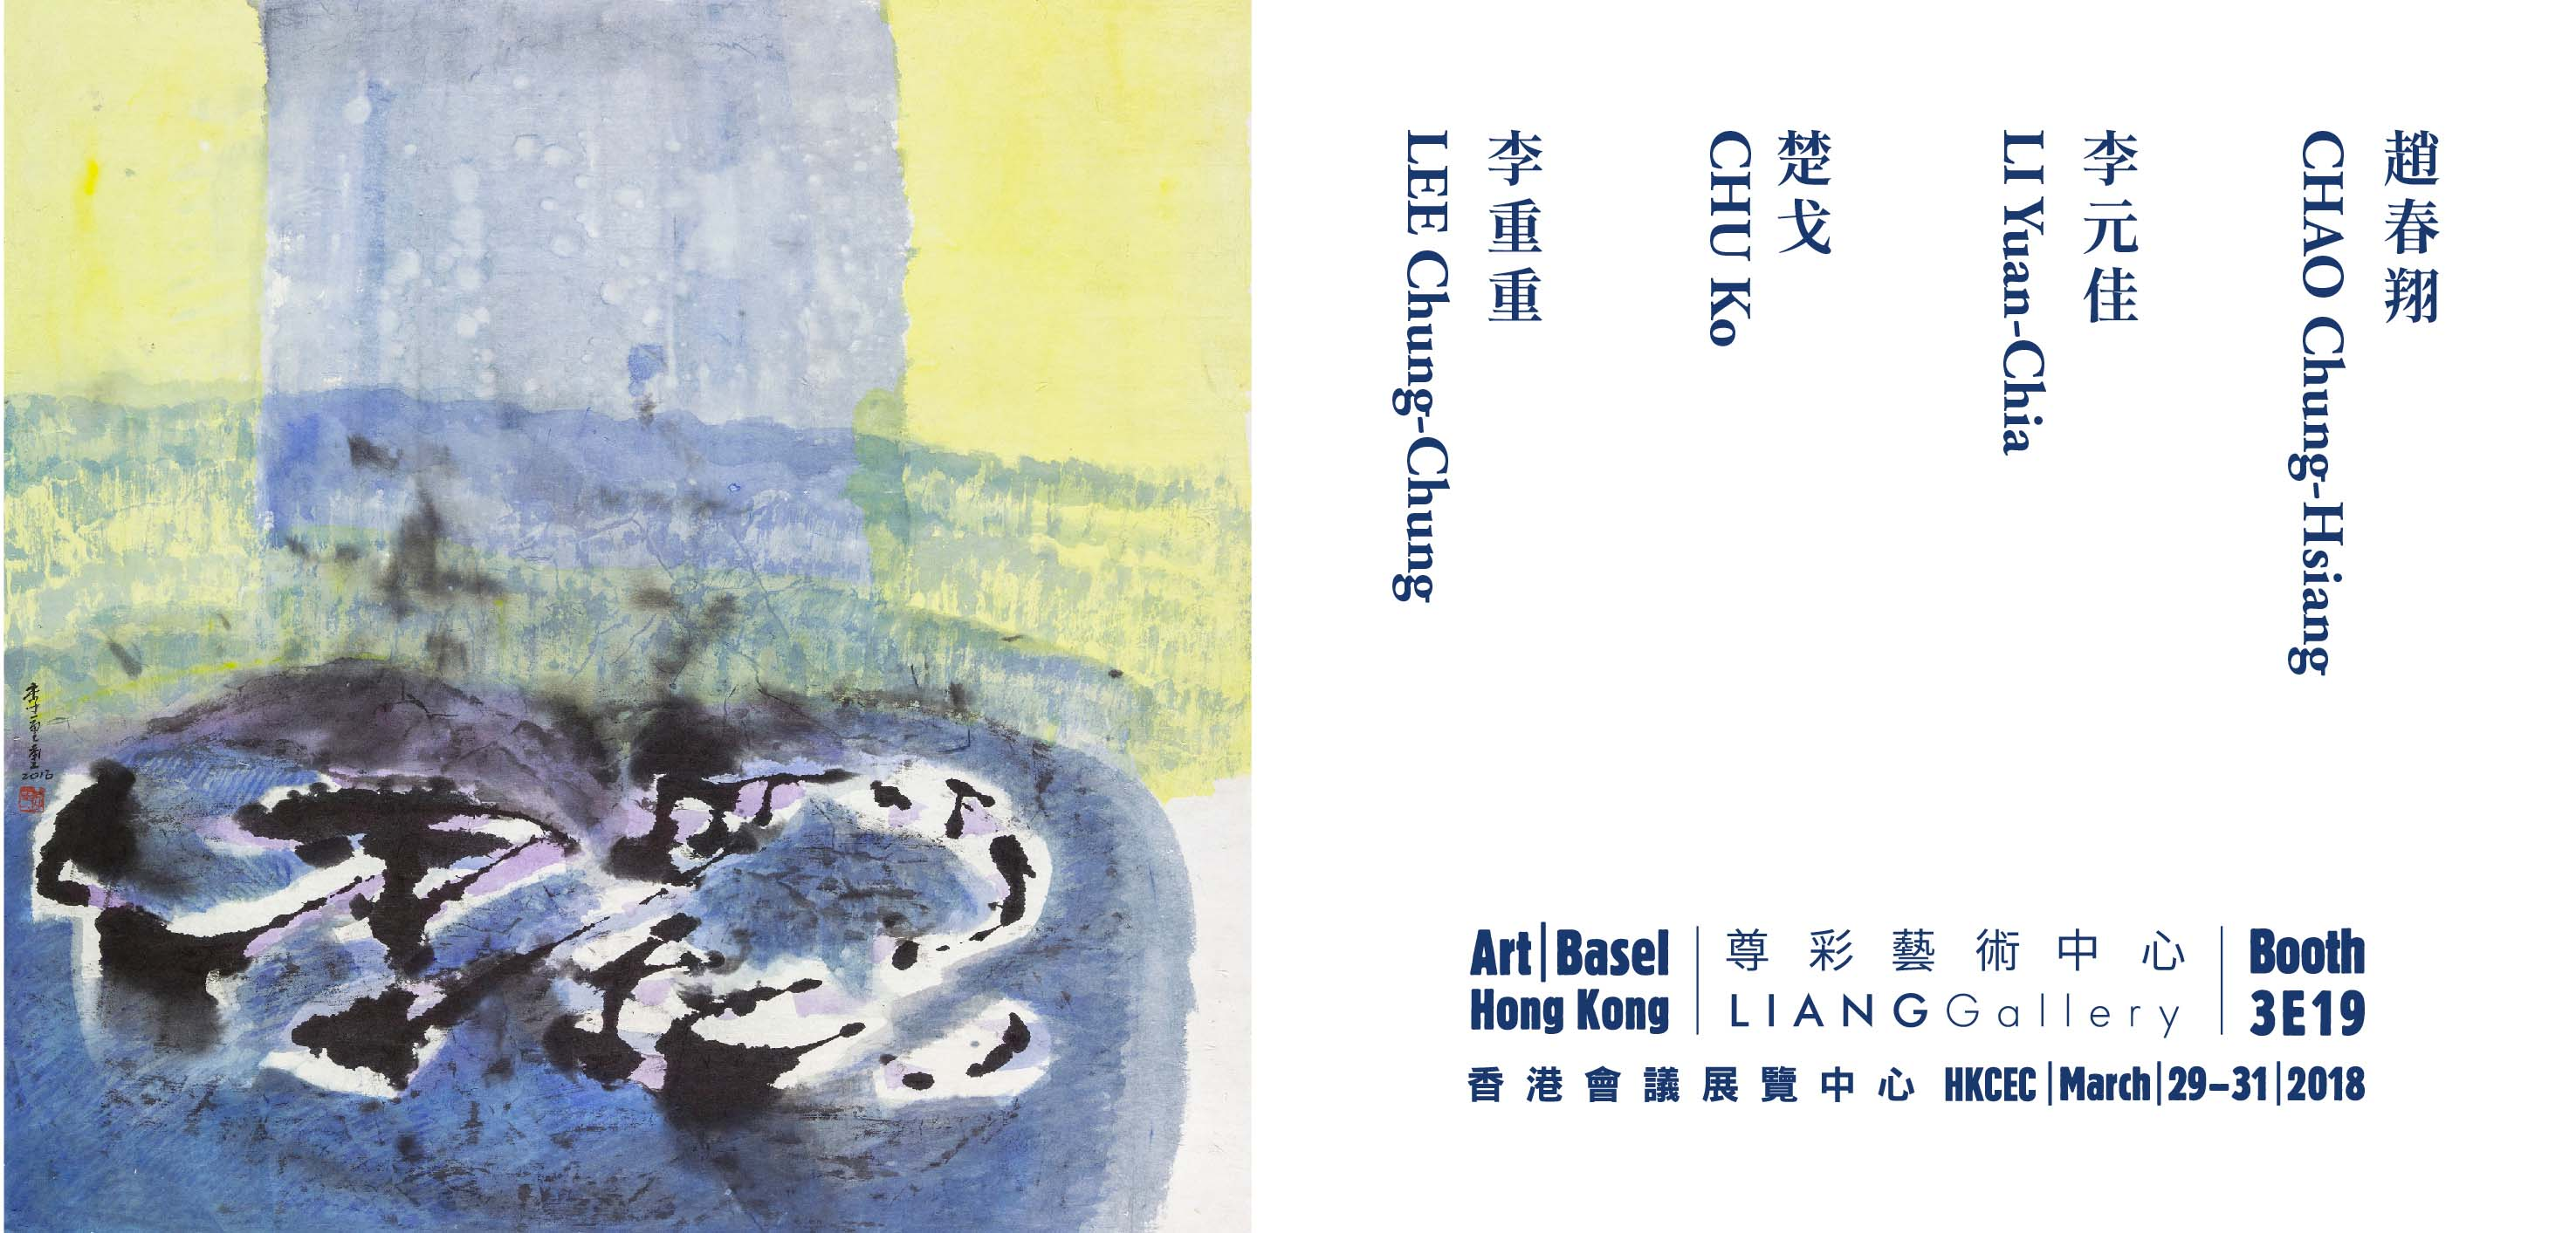 2018 ART BASEL HONG KONG: GALLERIES